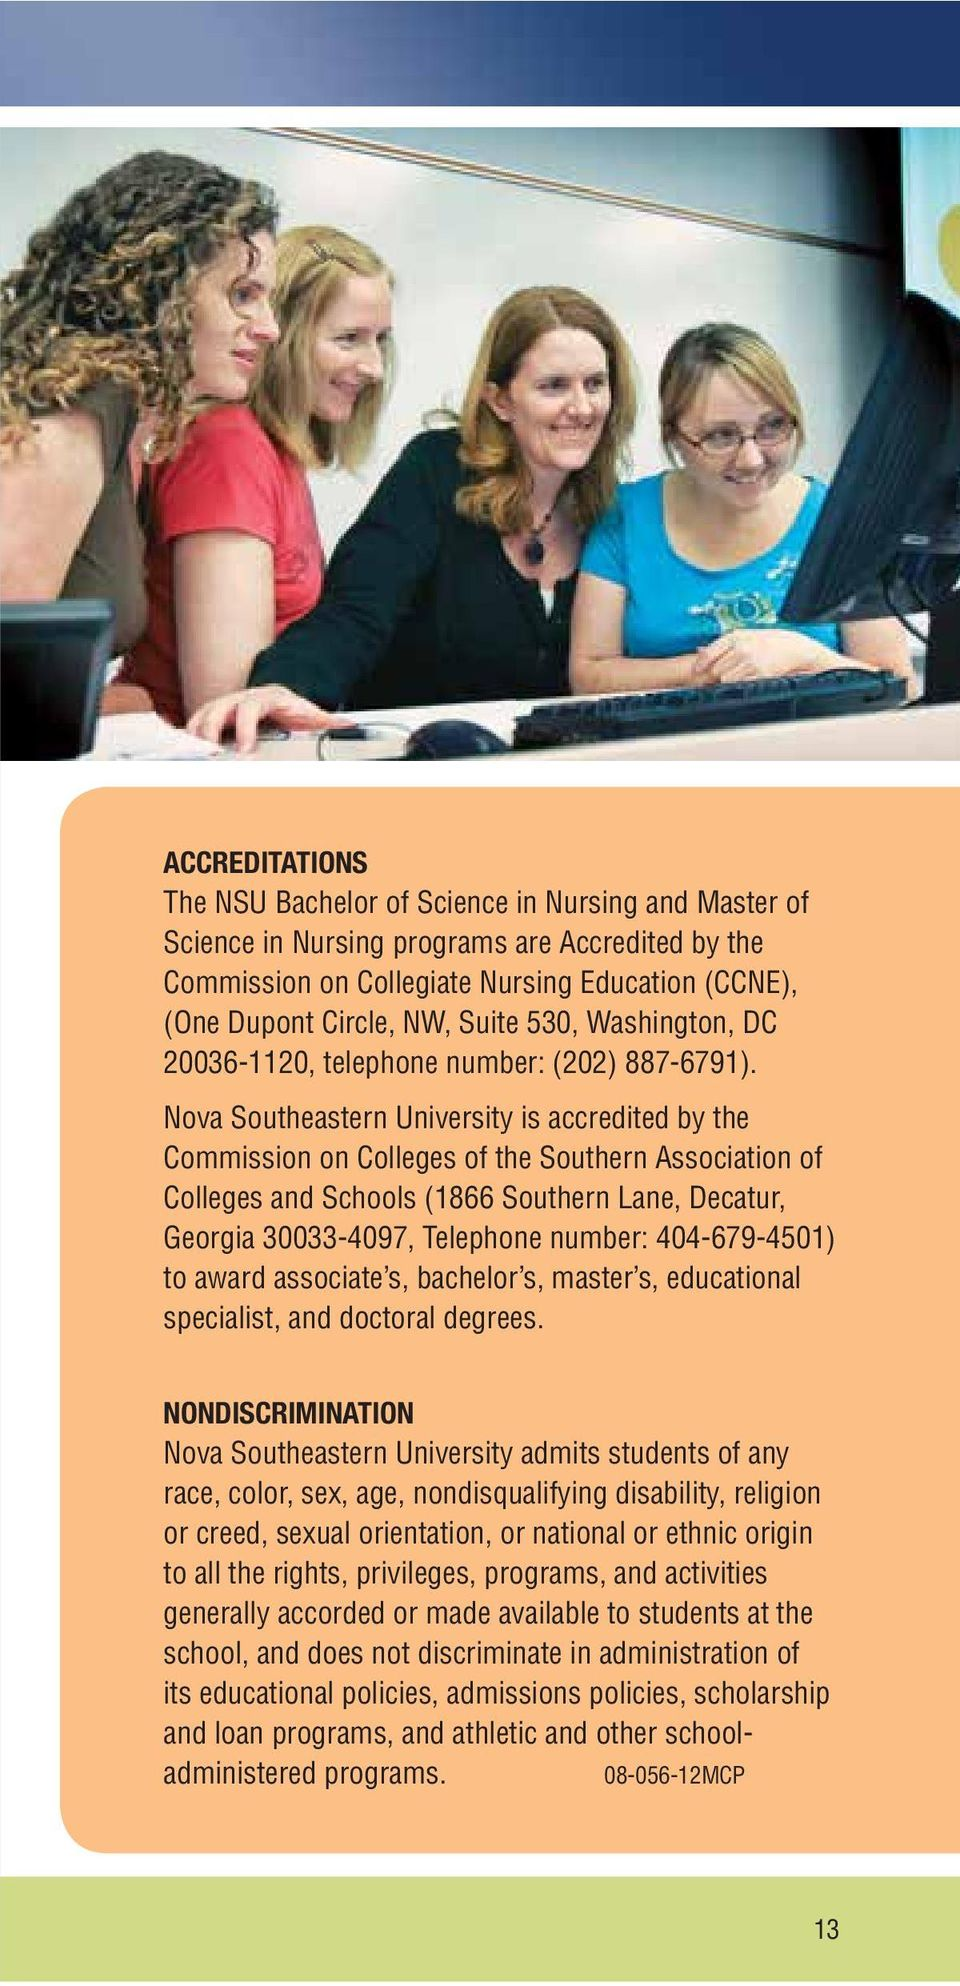 Nova Southeastern University is accredited by the Commission on Colleges of the Southern Association of Colleges and Schools (1866 Southern Lane, Decatur, Georgia 30033-4097, Telephone number: